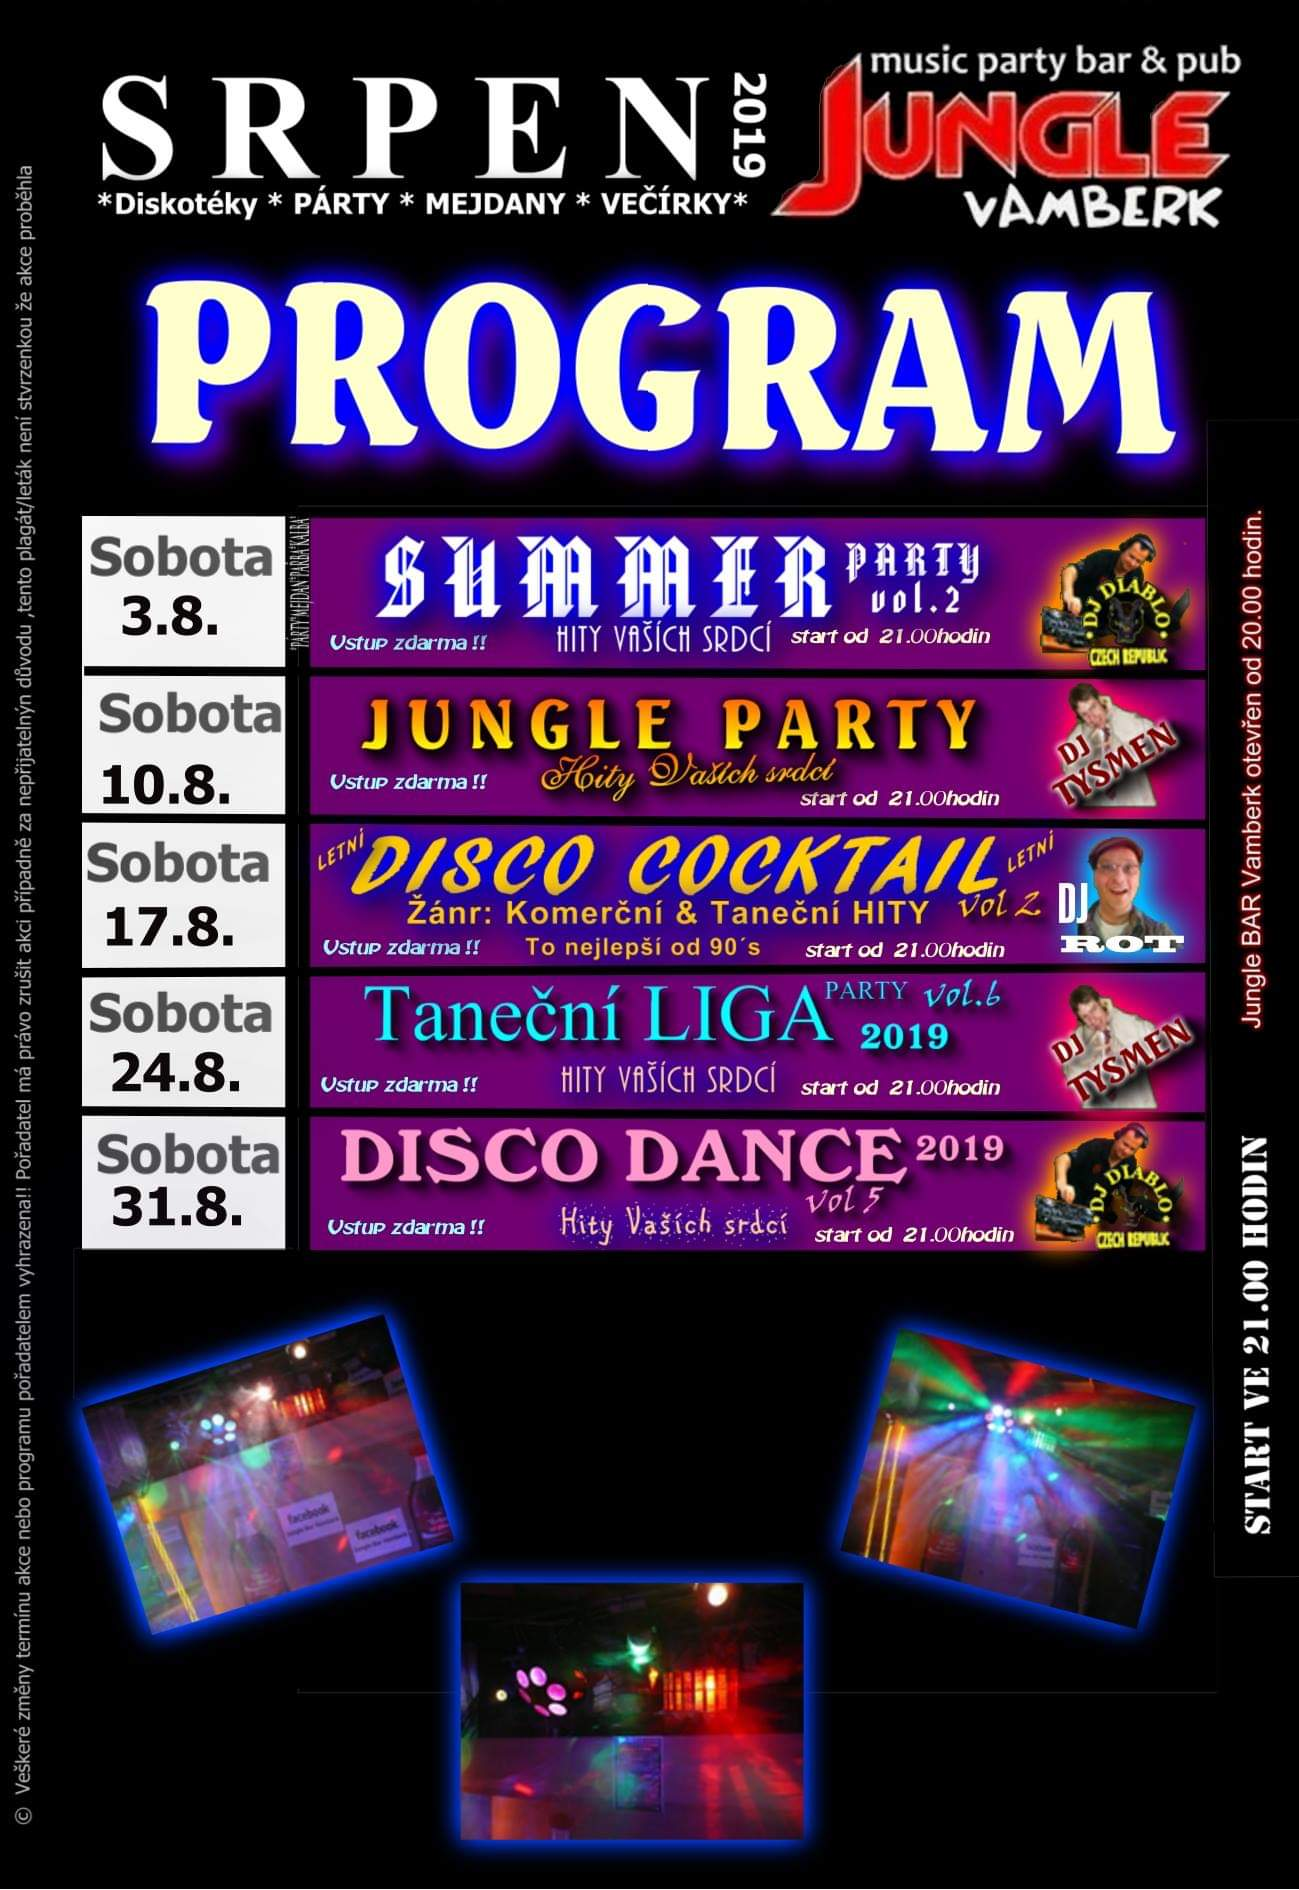 Jungle bar - program srpen